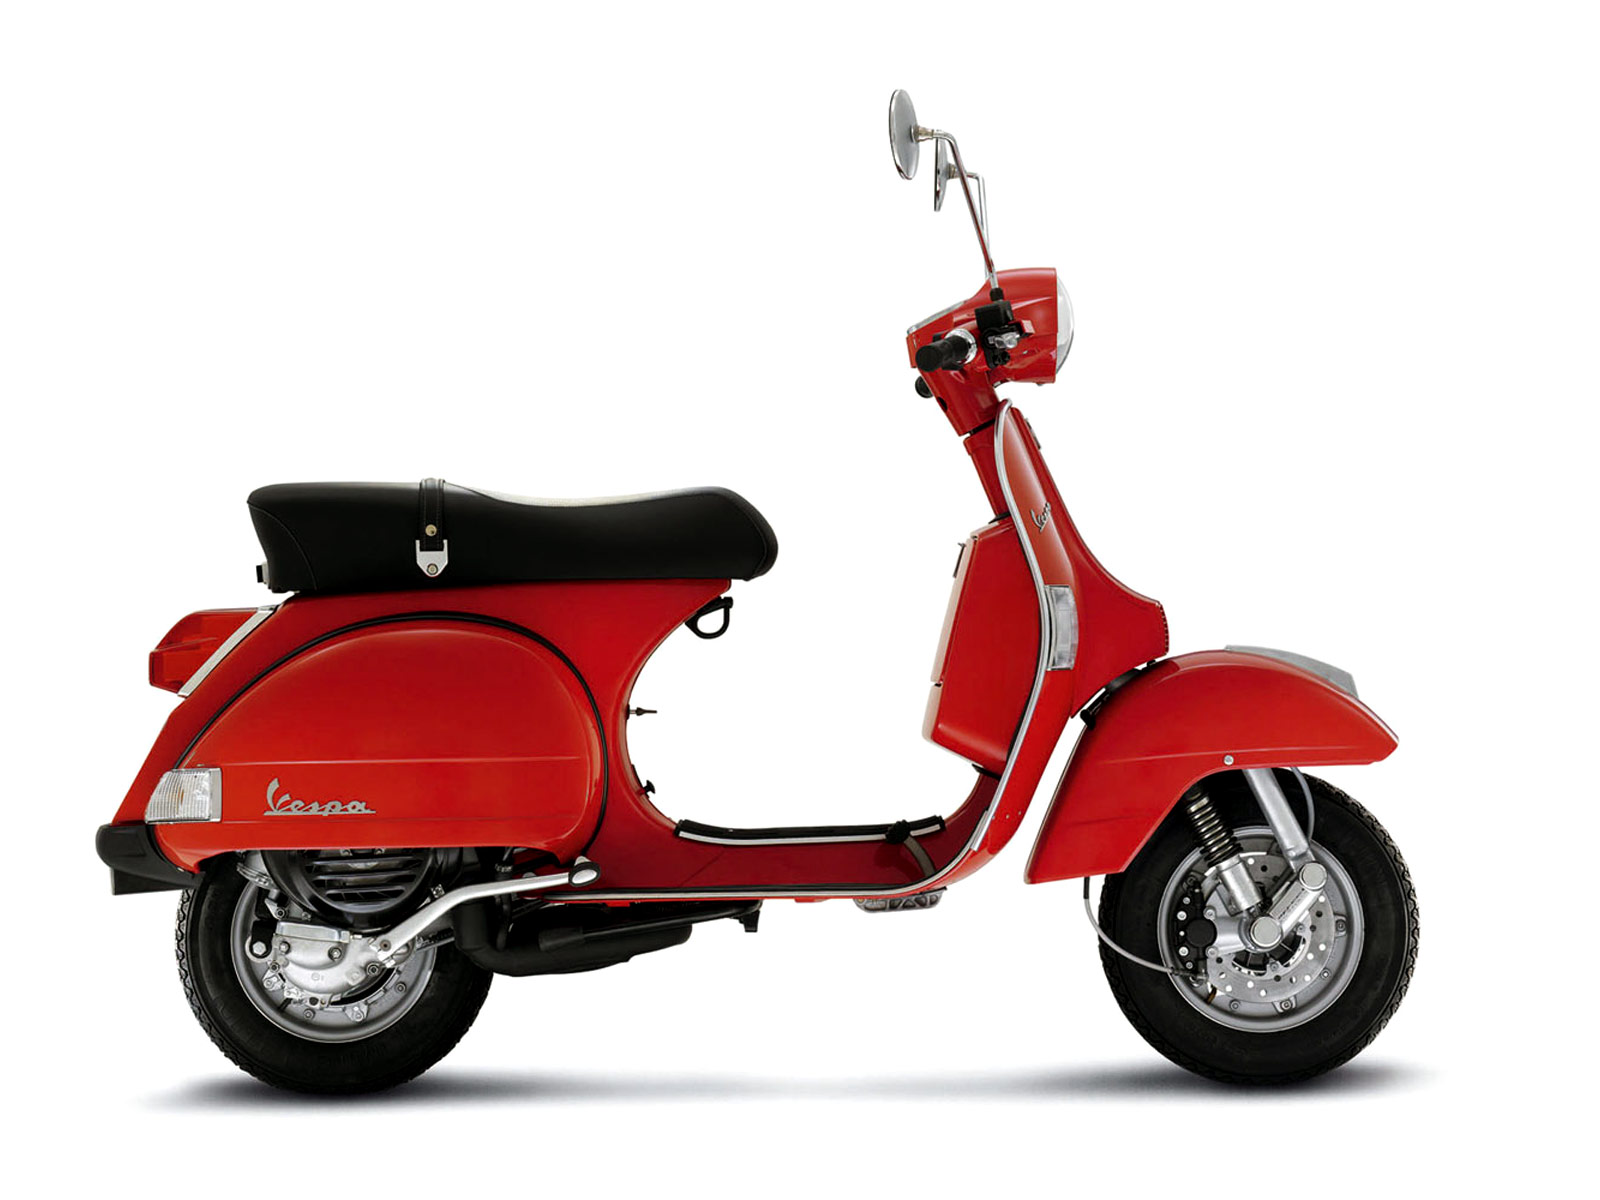 /hSuXEEVqlT4/s1600/2011_VESPA_PX_125_scooter-wallpapers_4. title=